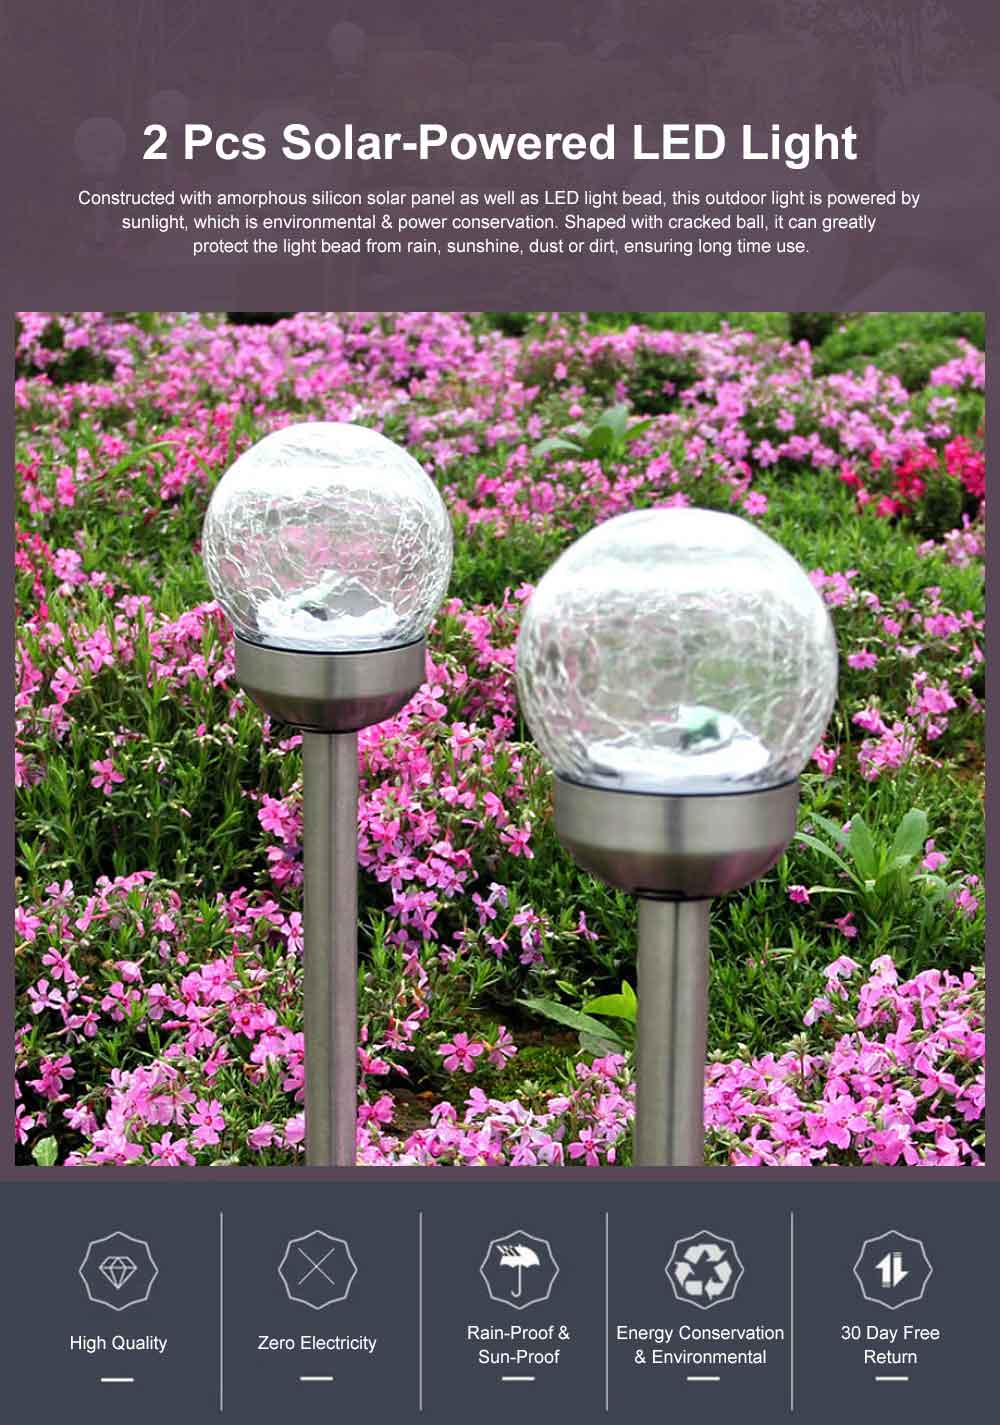 2pcs Solar-Powered Garden LED Light Environmental & Power-Saving Glass Crystal Ball Light Innovative Ambient Light Decoration for Outdoor Yard Lawn Ground 0